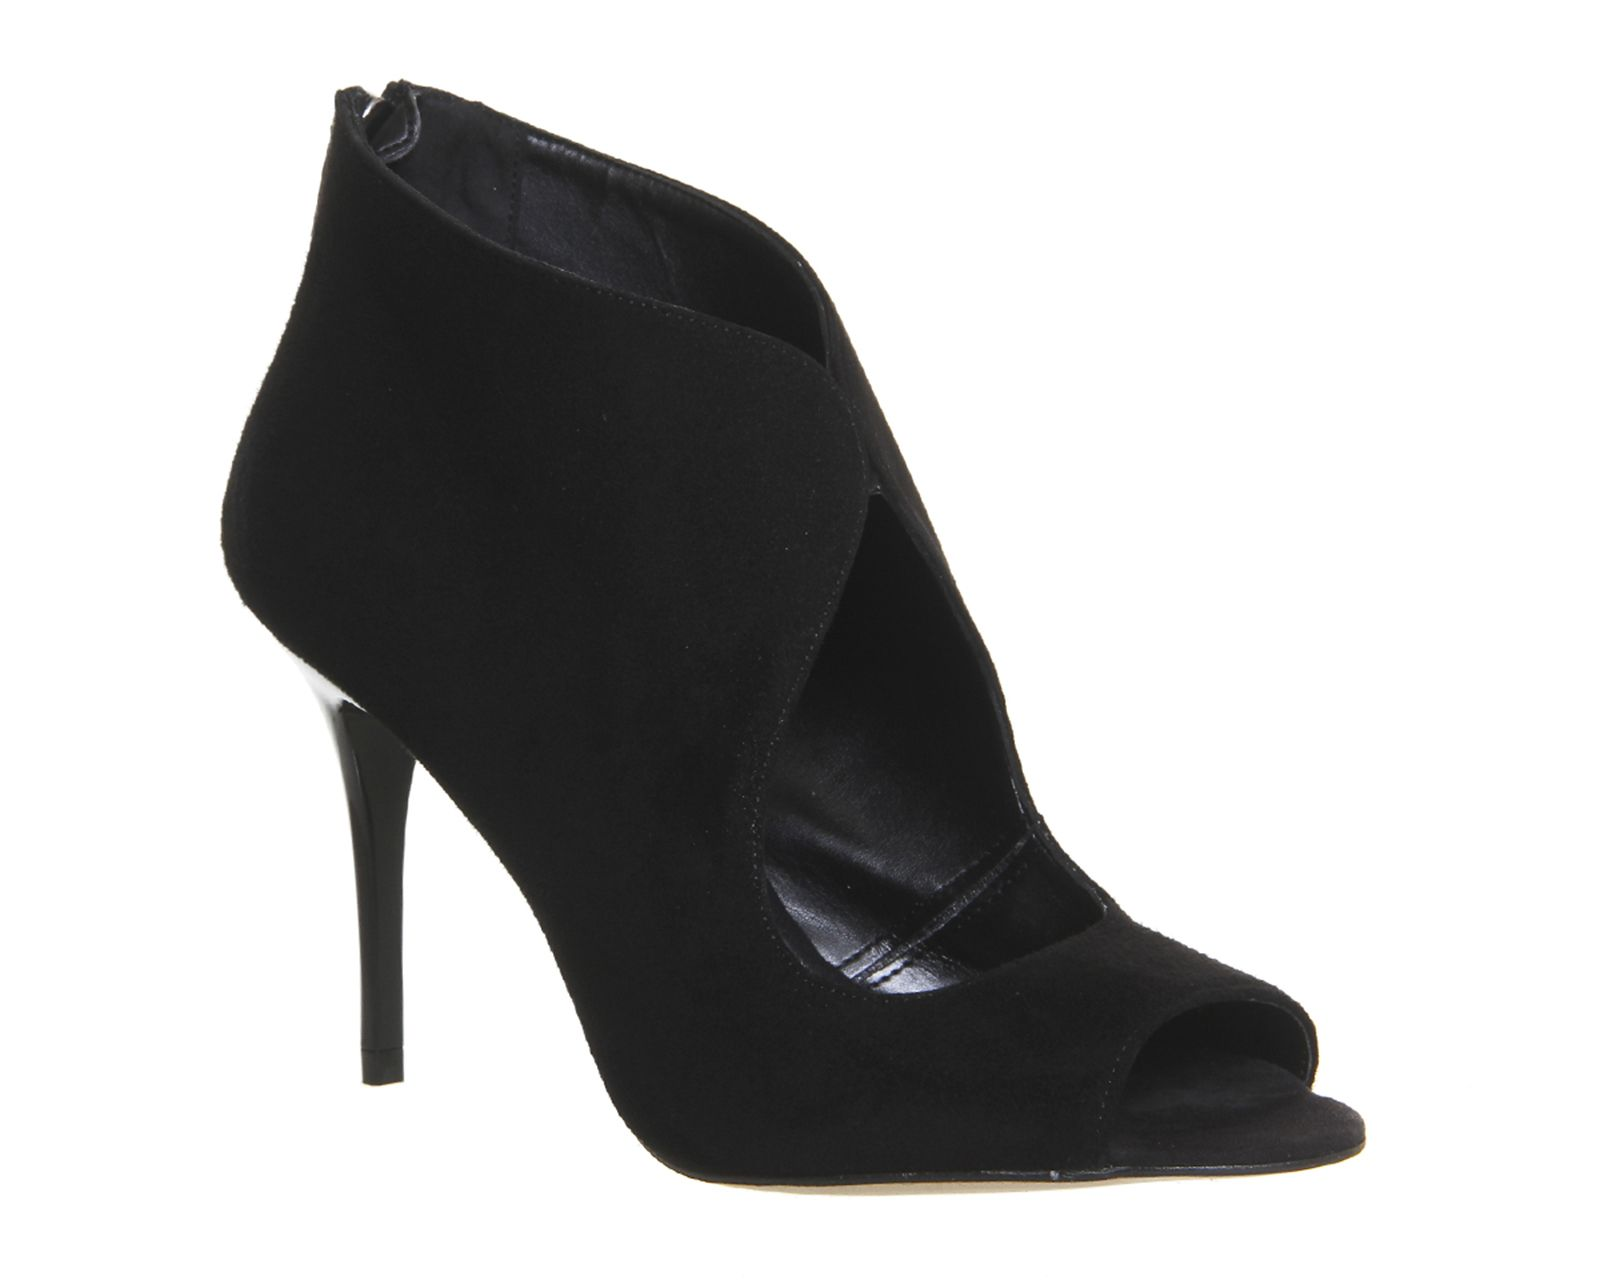 Buy Black Suede Office Quids In Cut Out Shoe Boots from OFFICE.co.uk